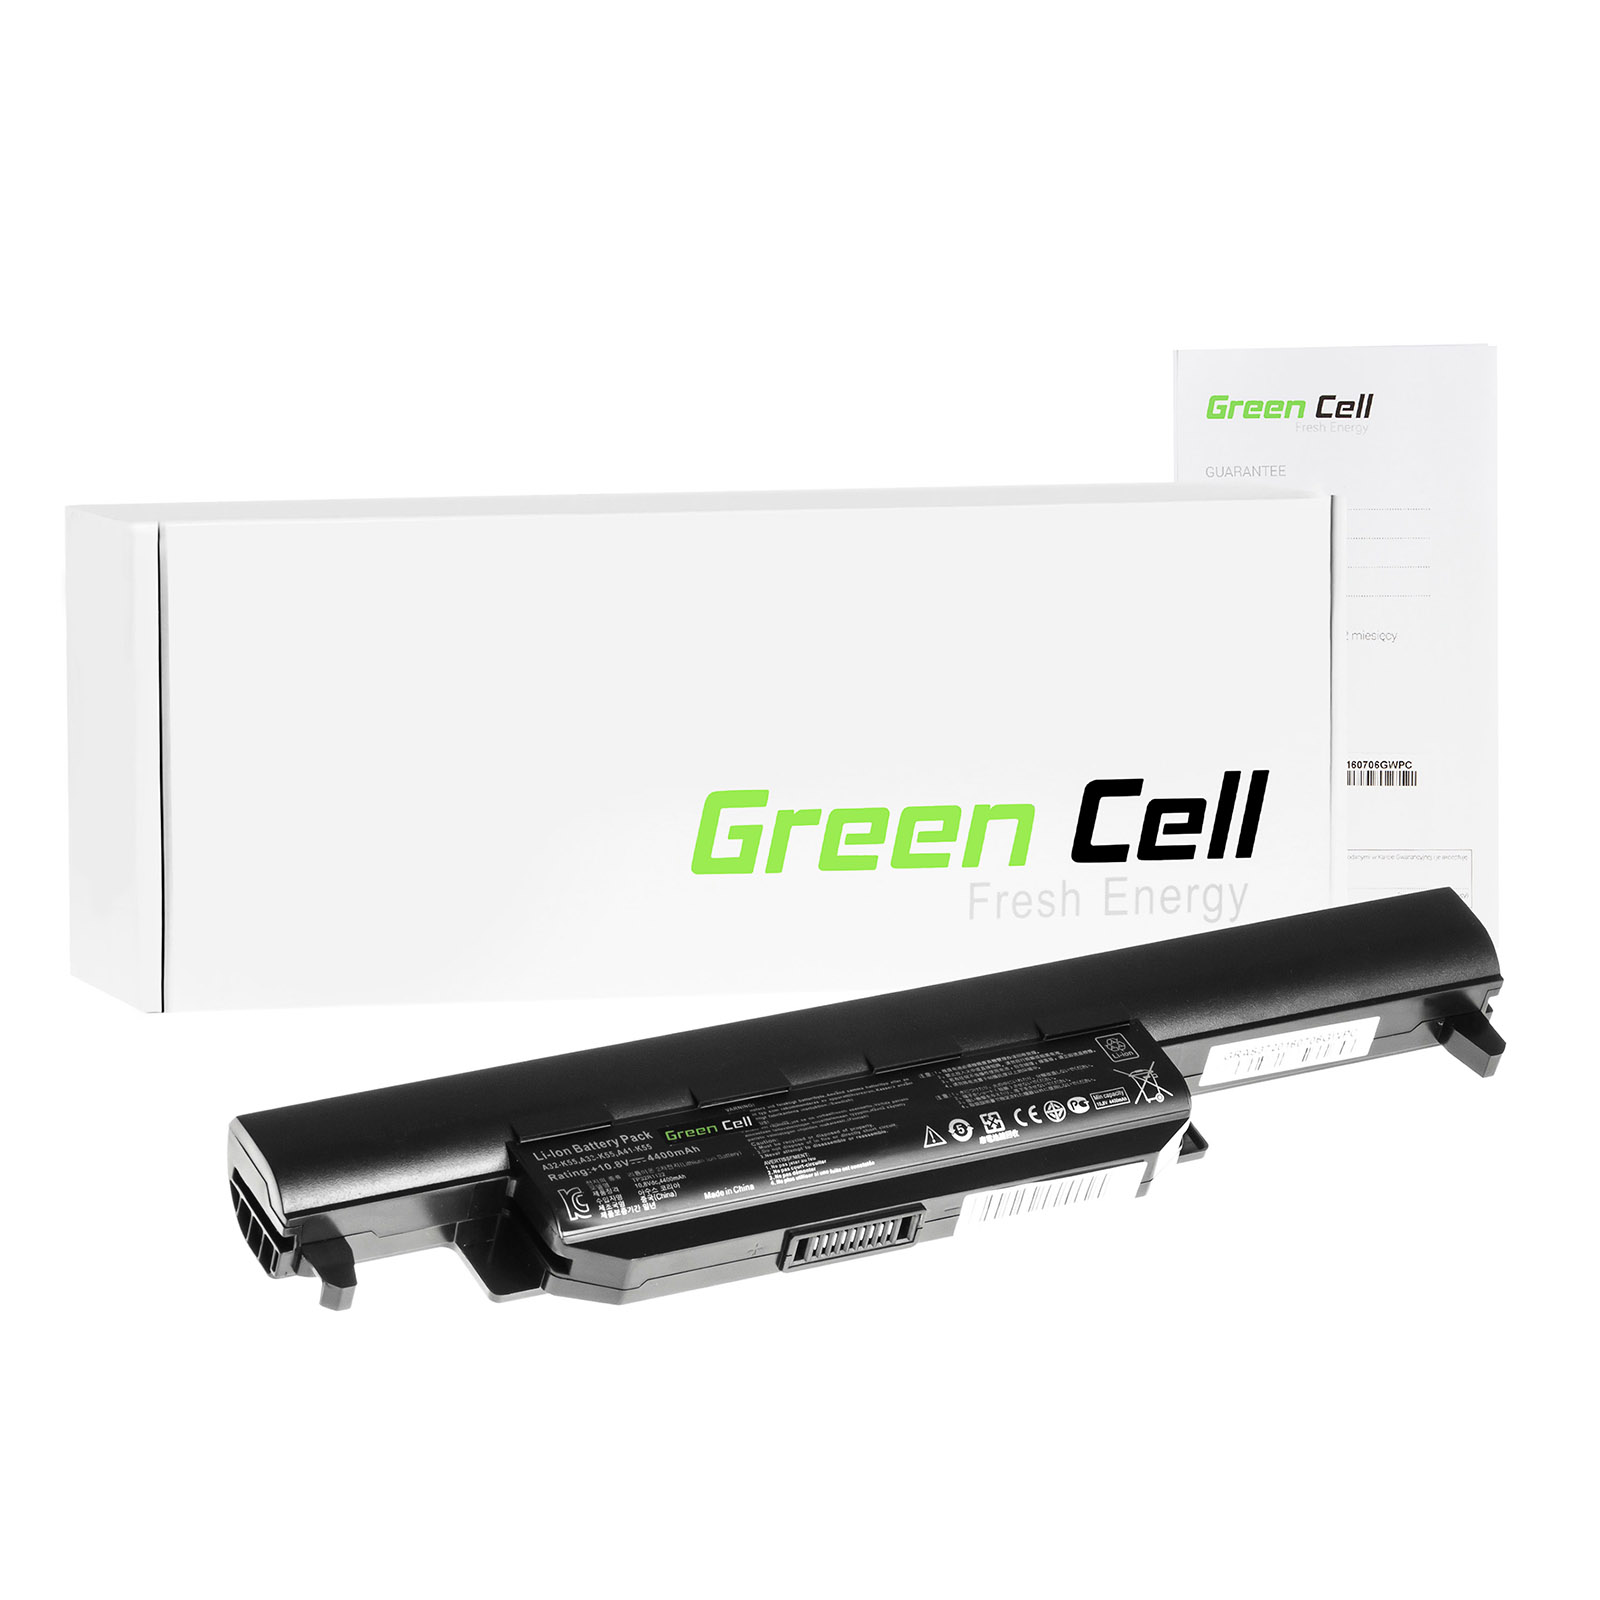 green cell batterie pour asus a85d ordinateur pc portable. Black Bedroom Furniture Sets. Home Design Ideas